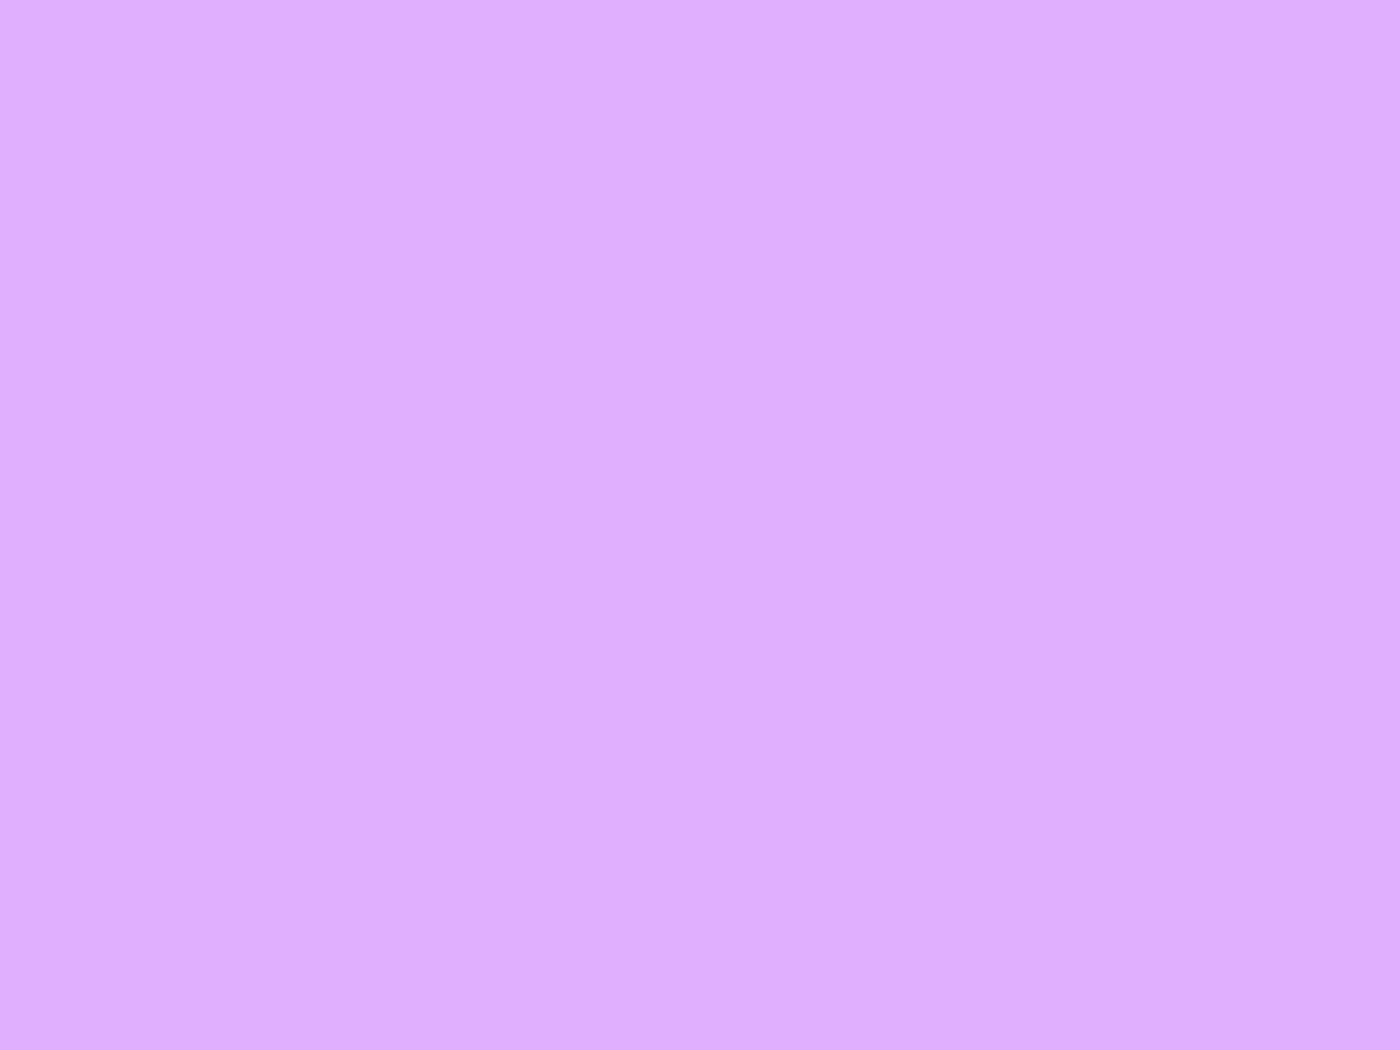 1400x1050 Mauve Solid Color Background